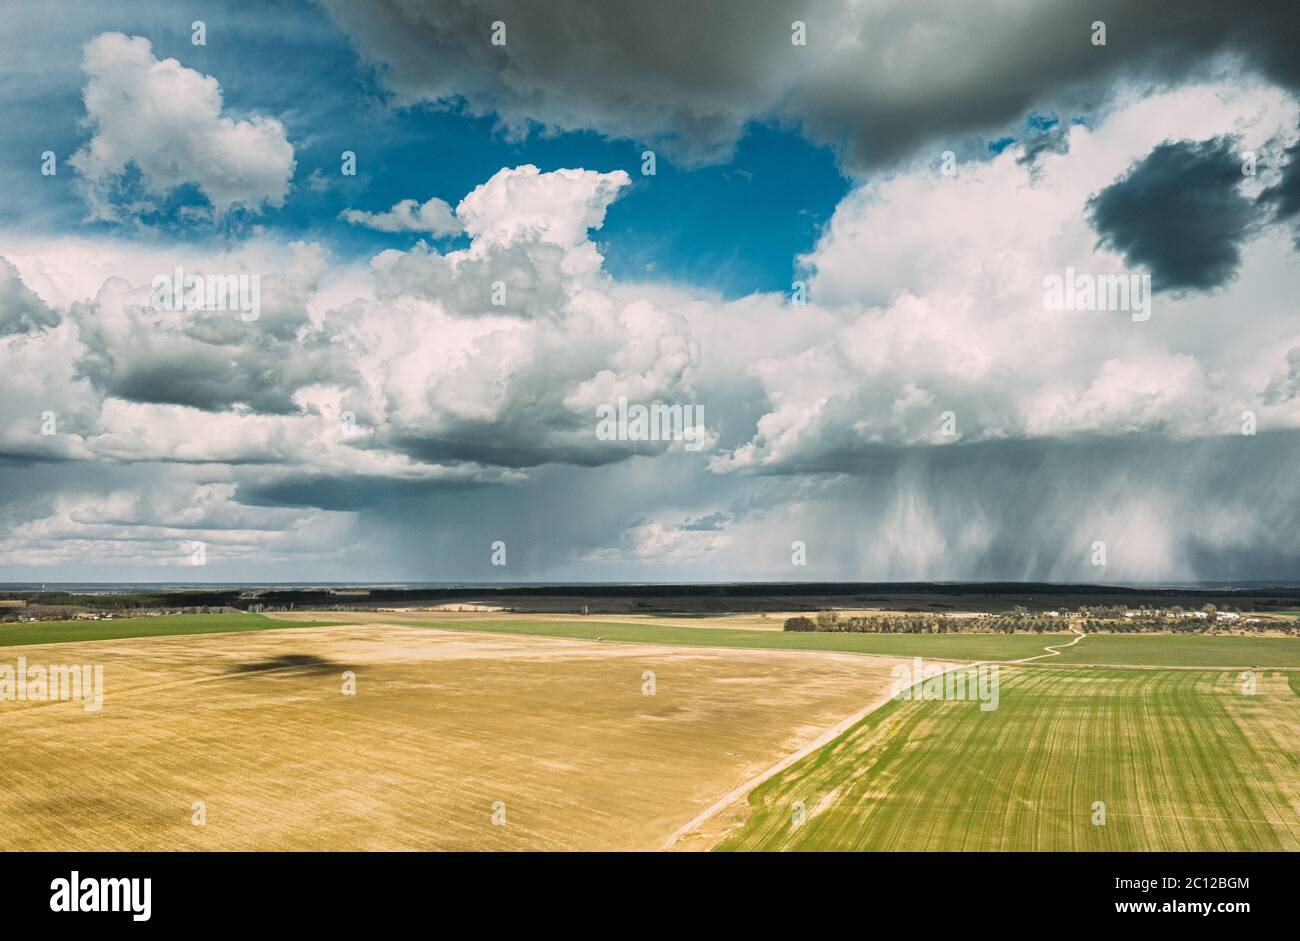 Aerial View. Amazing Natural Dramatic Sky With Rain Clouds Above Countryside Rural Field Landscape In Spring Summer Cloudy Day. Scenic Sky With Fluffy Stock Photo